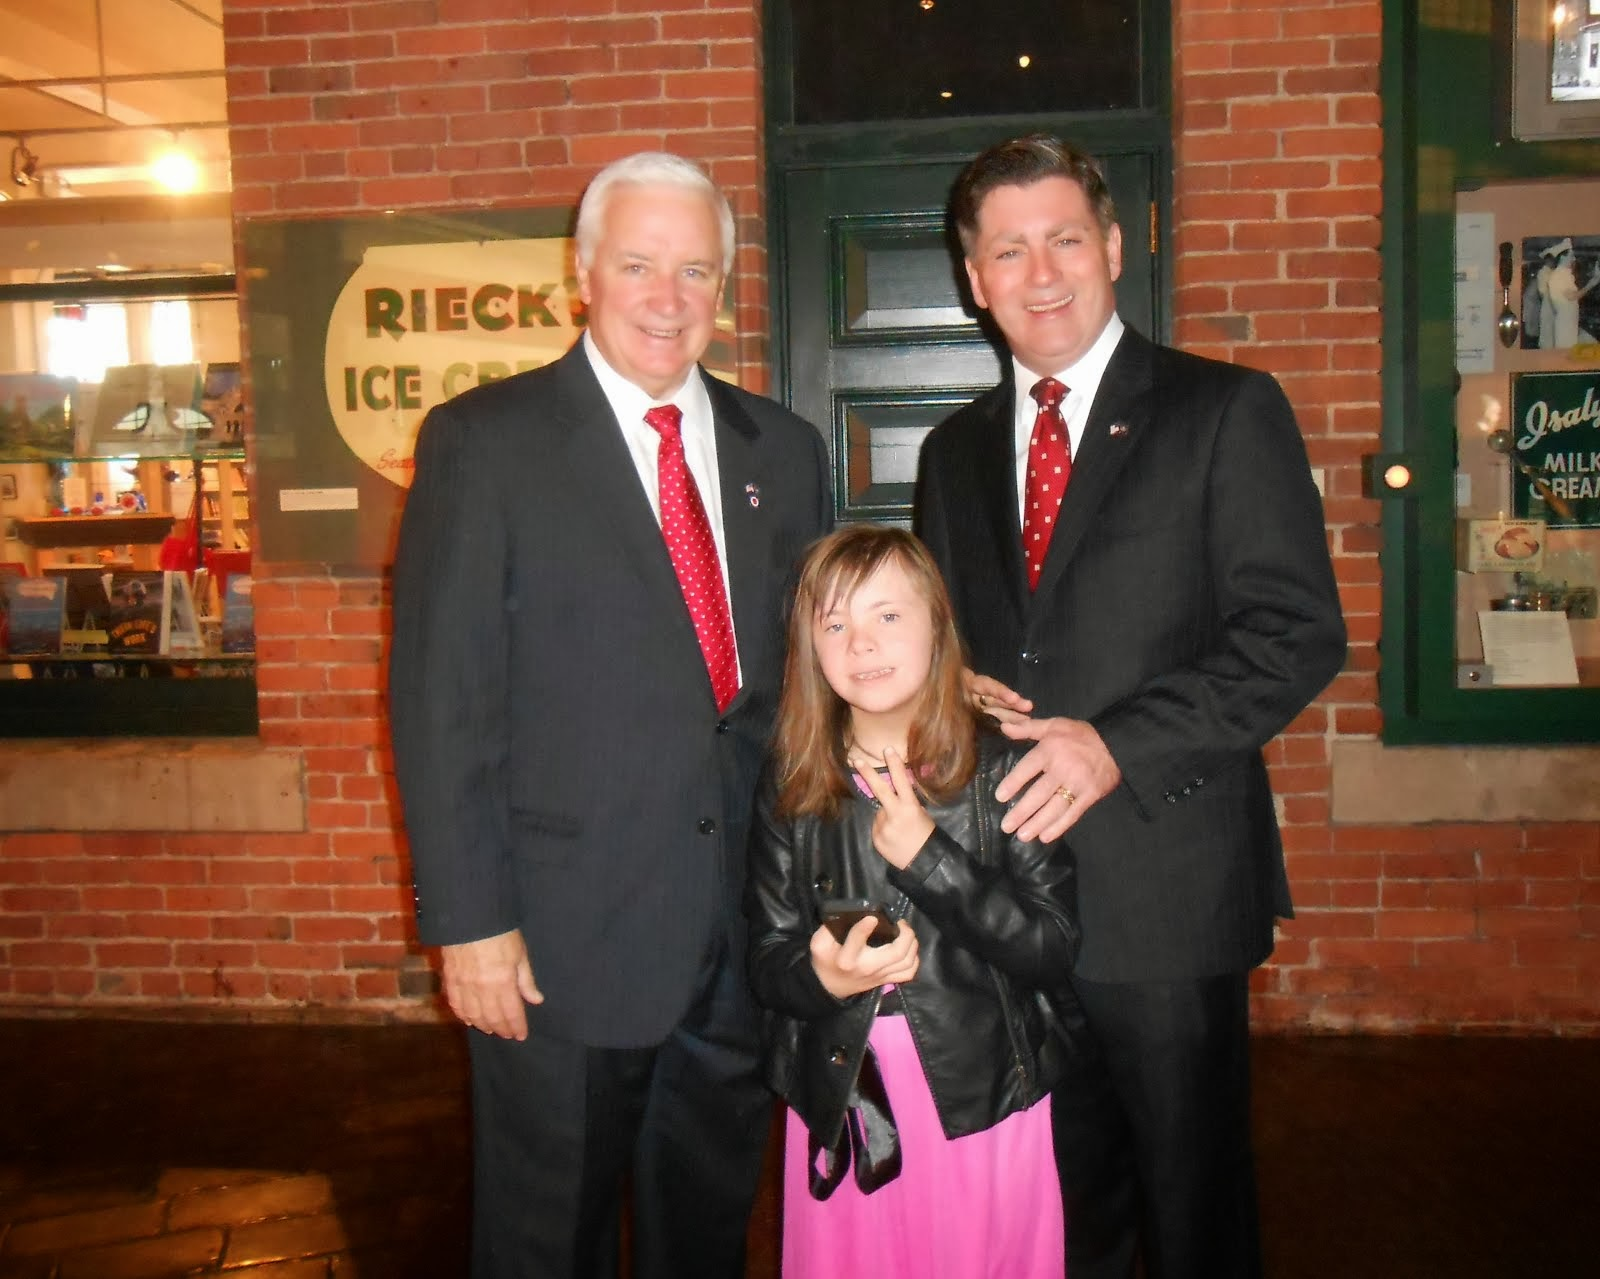 Chloe meets with PA Gov. Corbett and Lt. Gov. Cawley at Pittsburgh Event